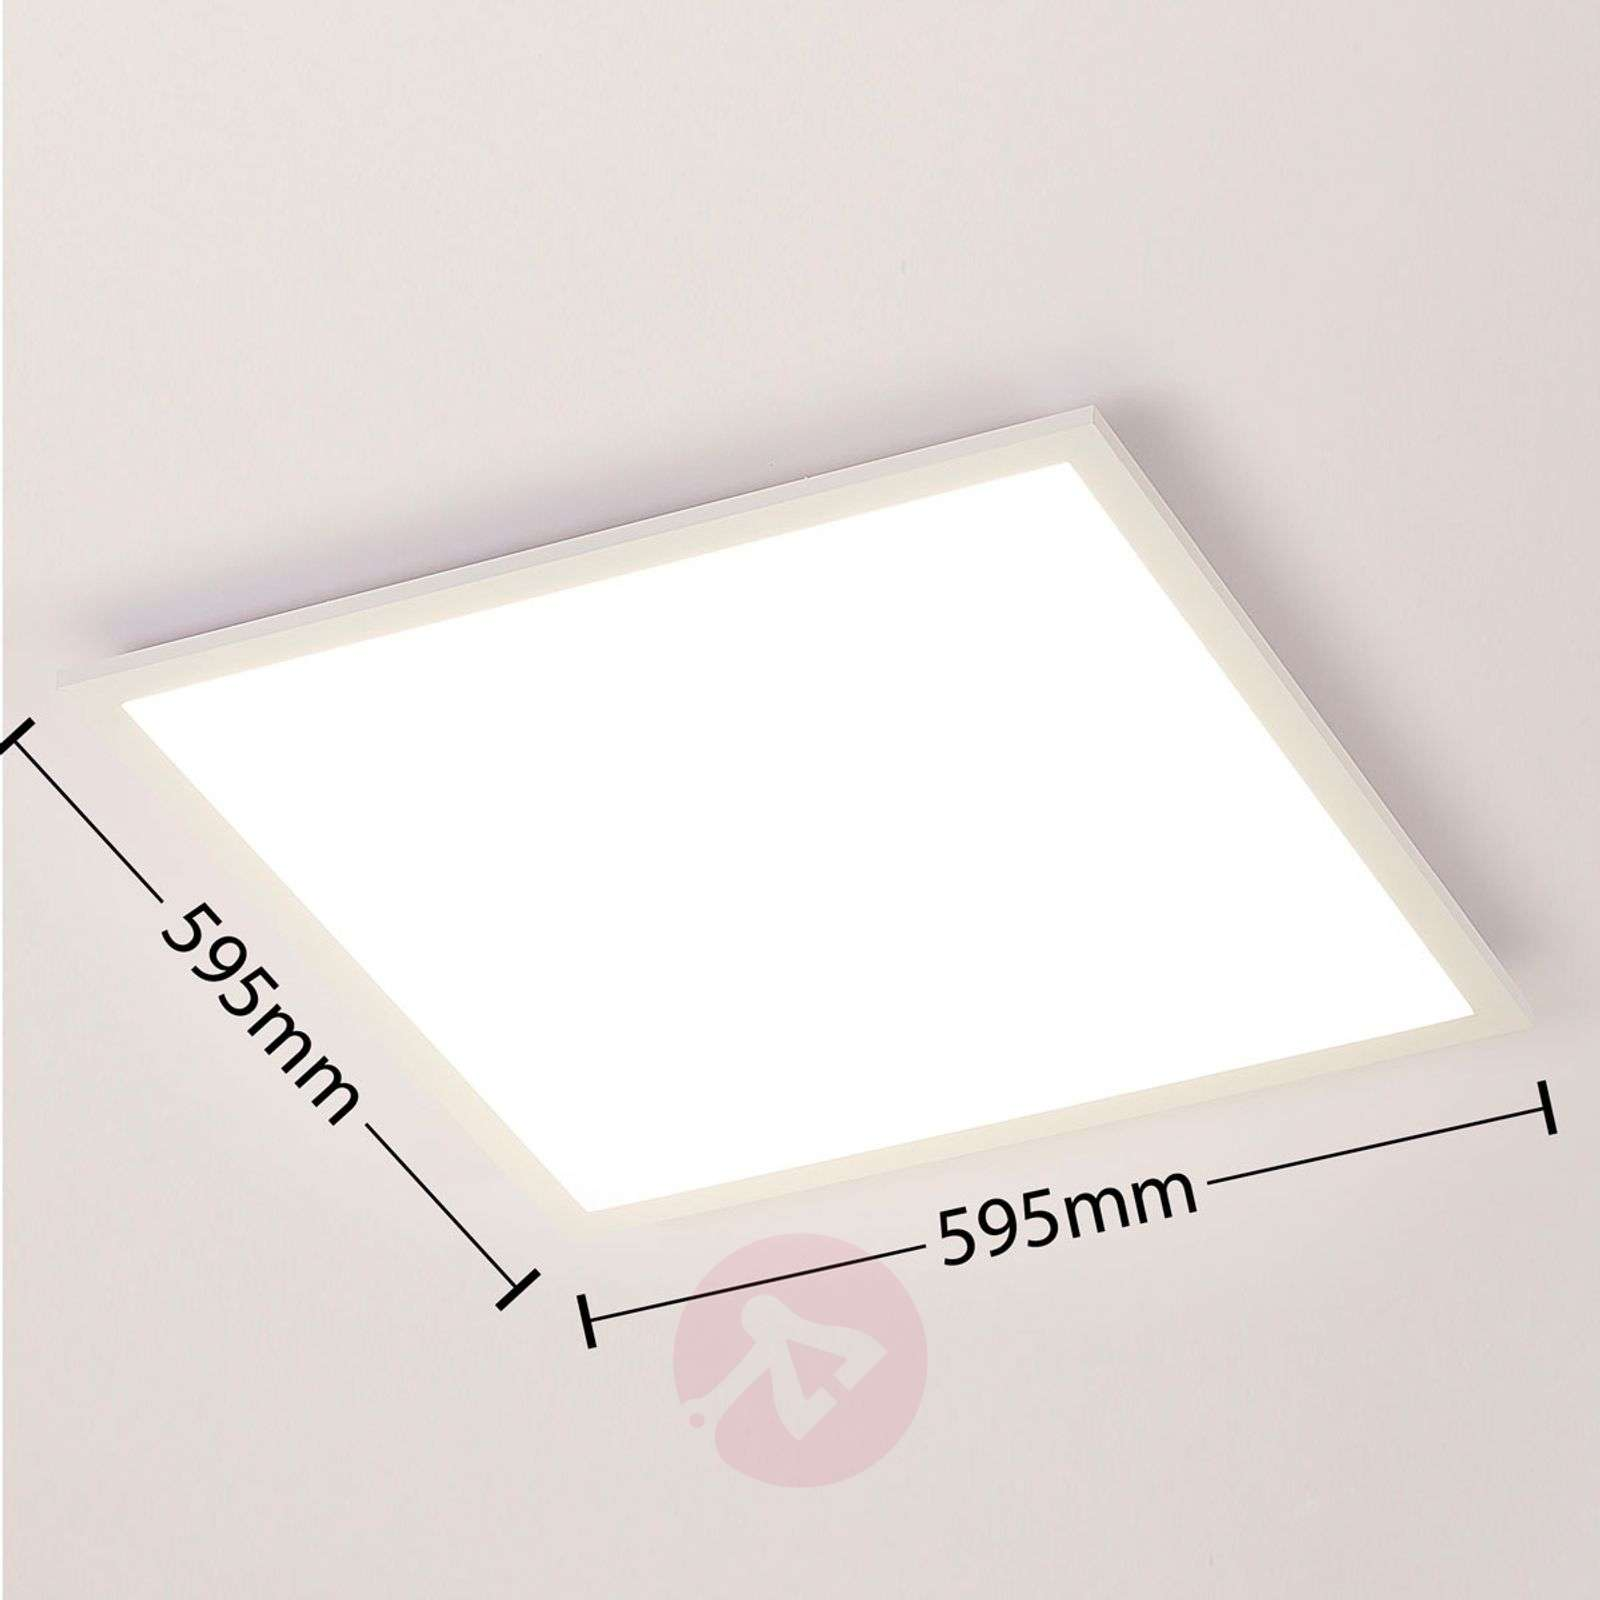 Panel LED Lysander, color luminoso ajustable-9621550-01